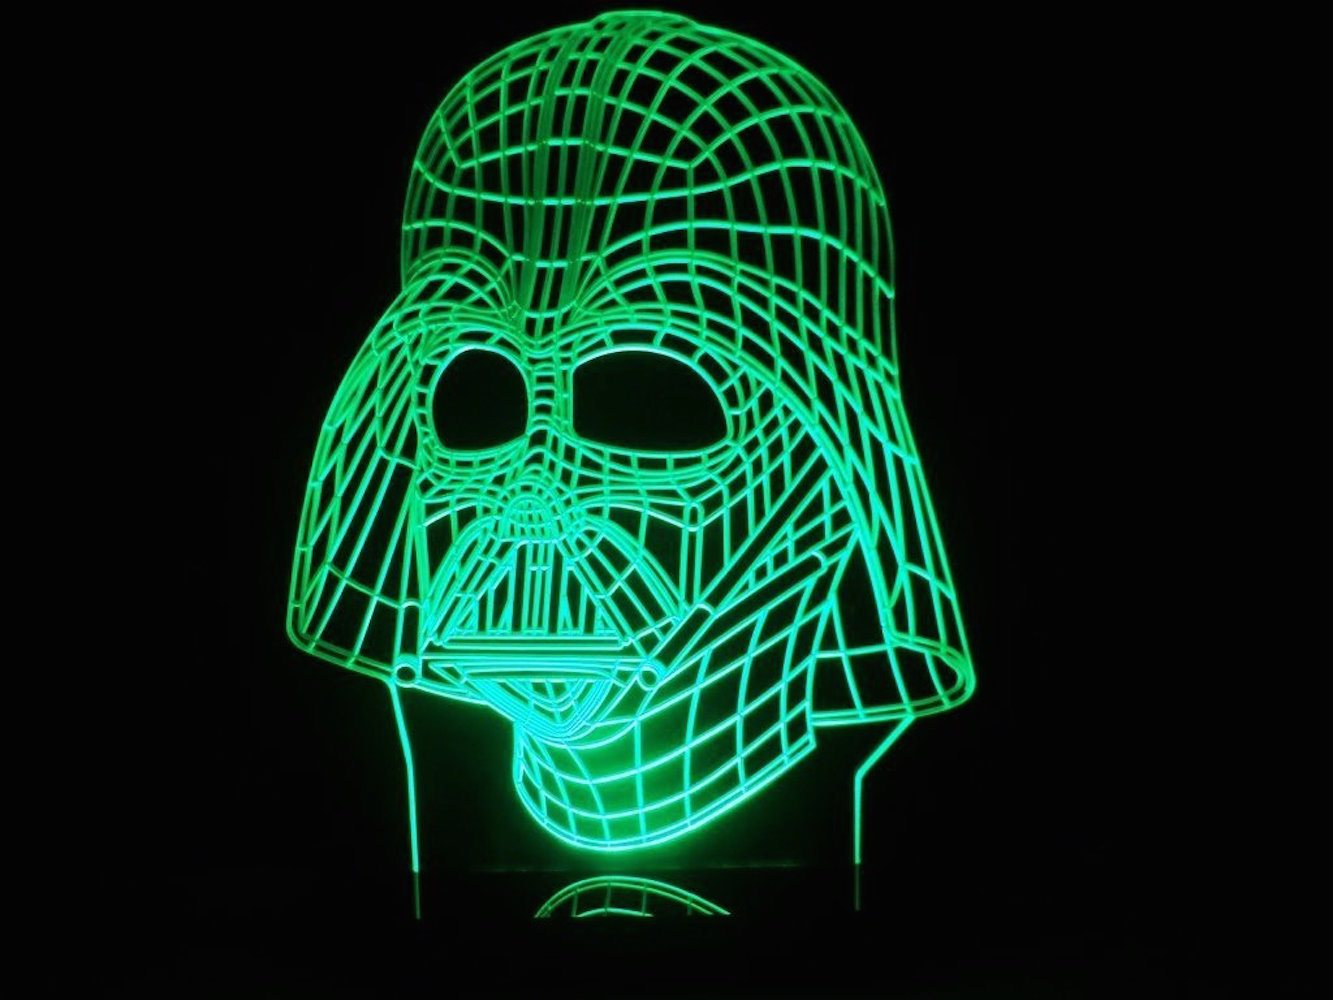 darth-vader-led-light-table-lamp-02